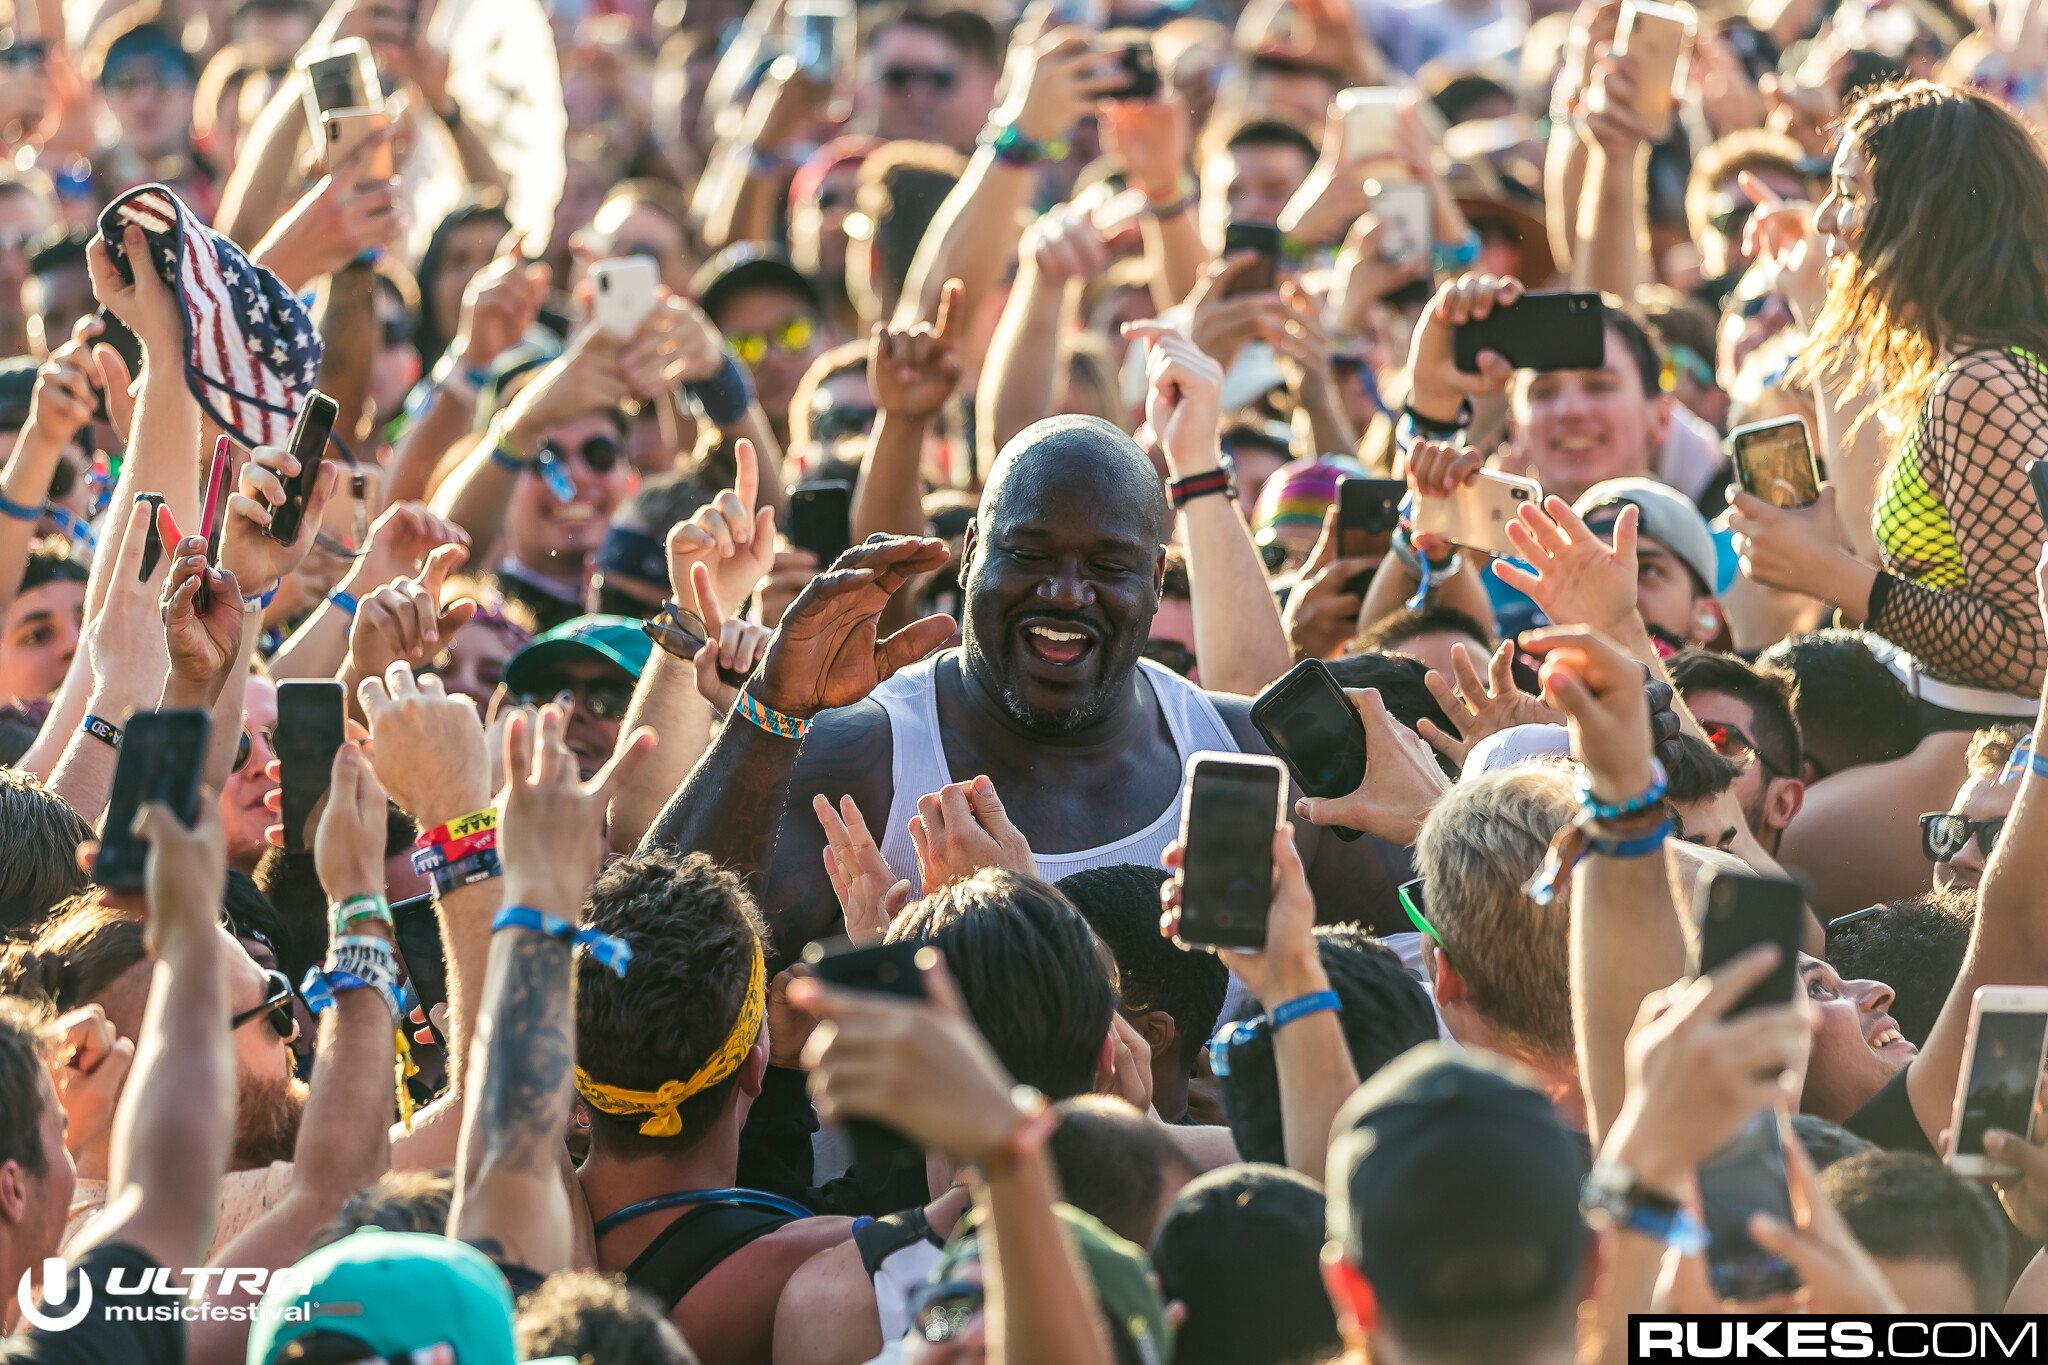 Here's Footage of Shaq in a Mosh Pit